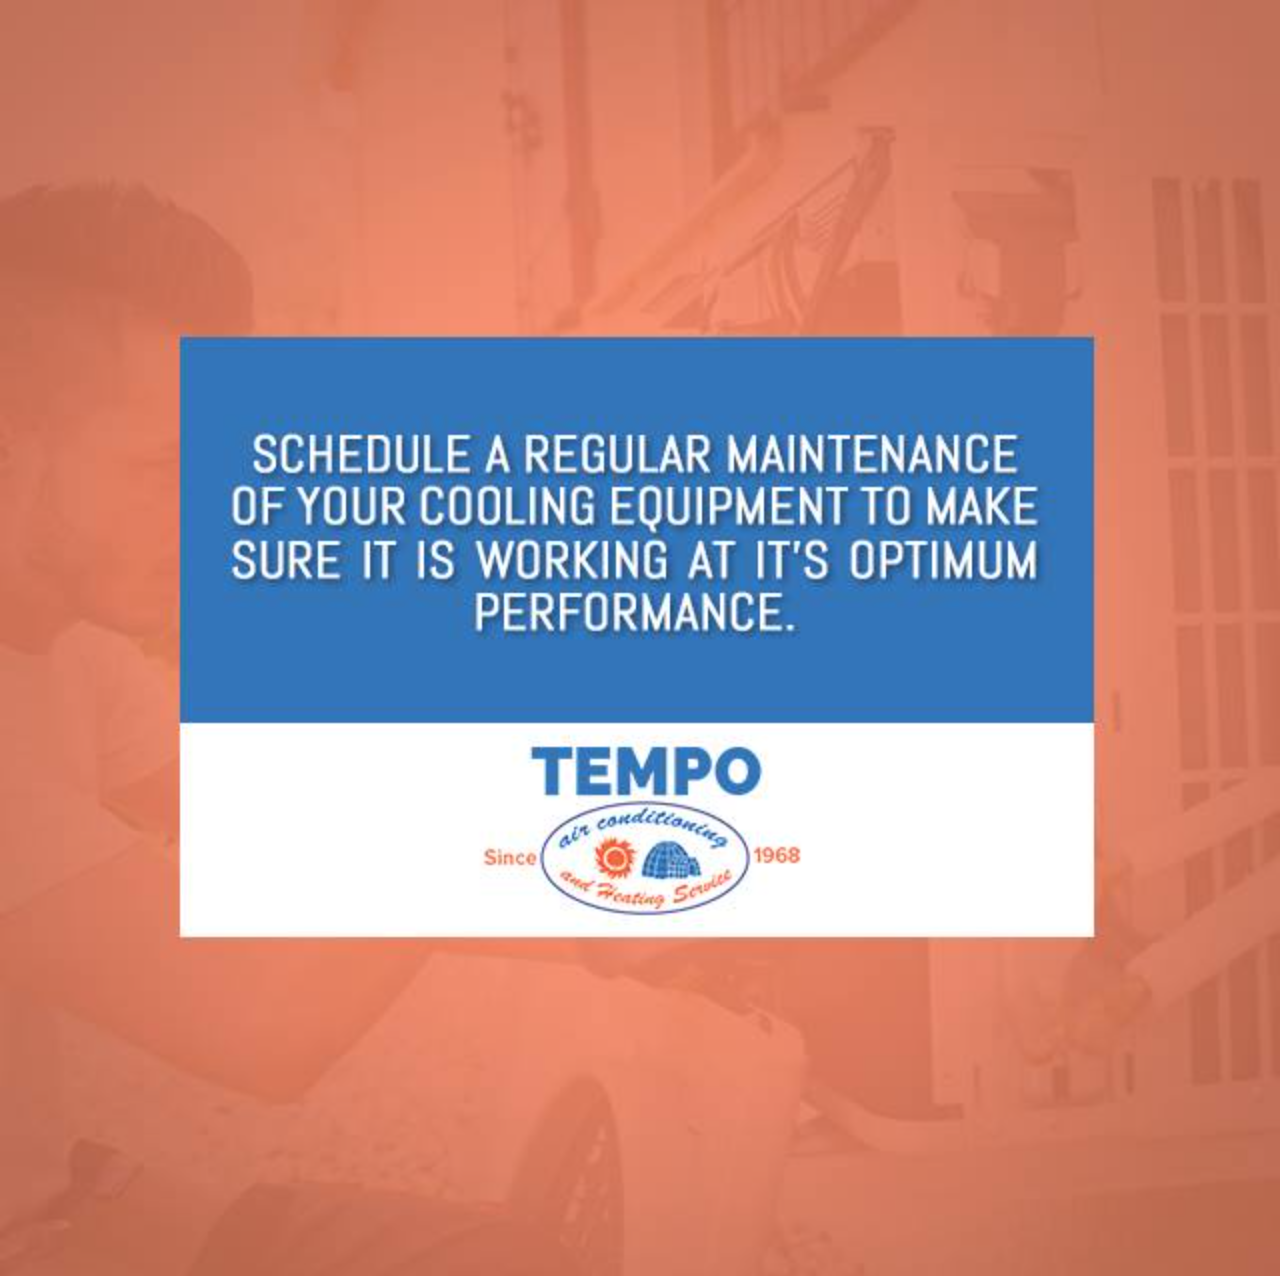 Tempo Air Conditioning image 6